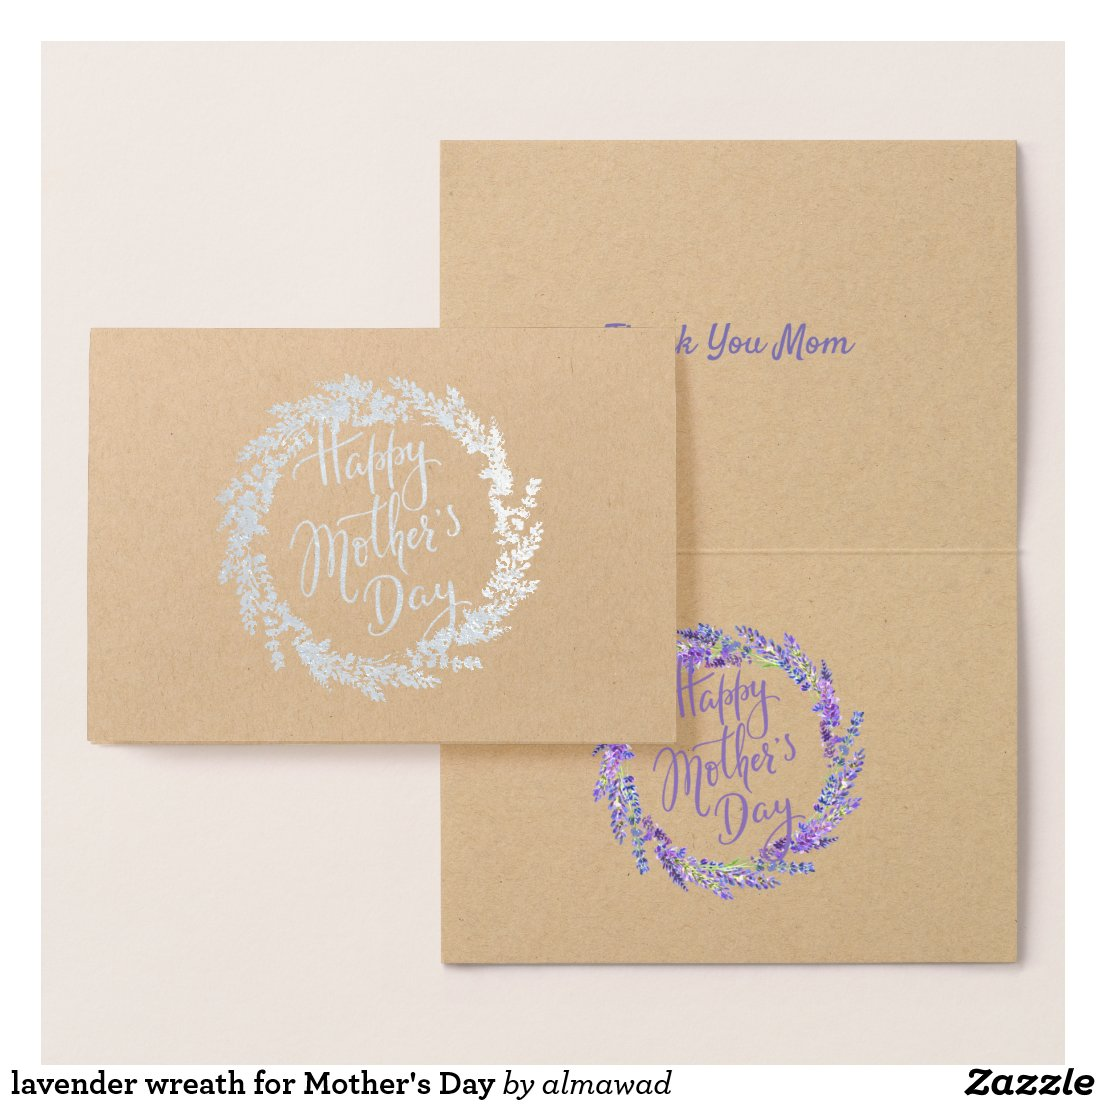 lavender wreath for Mother's Day Foil Card